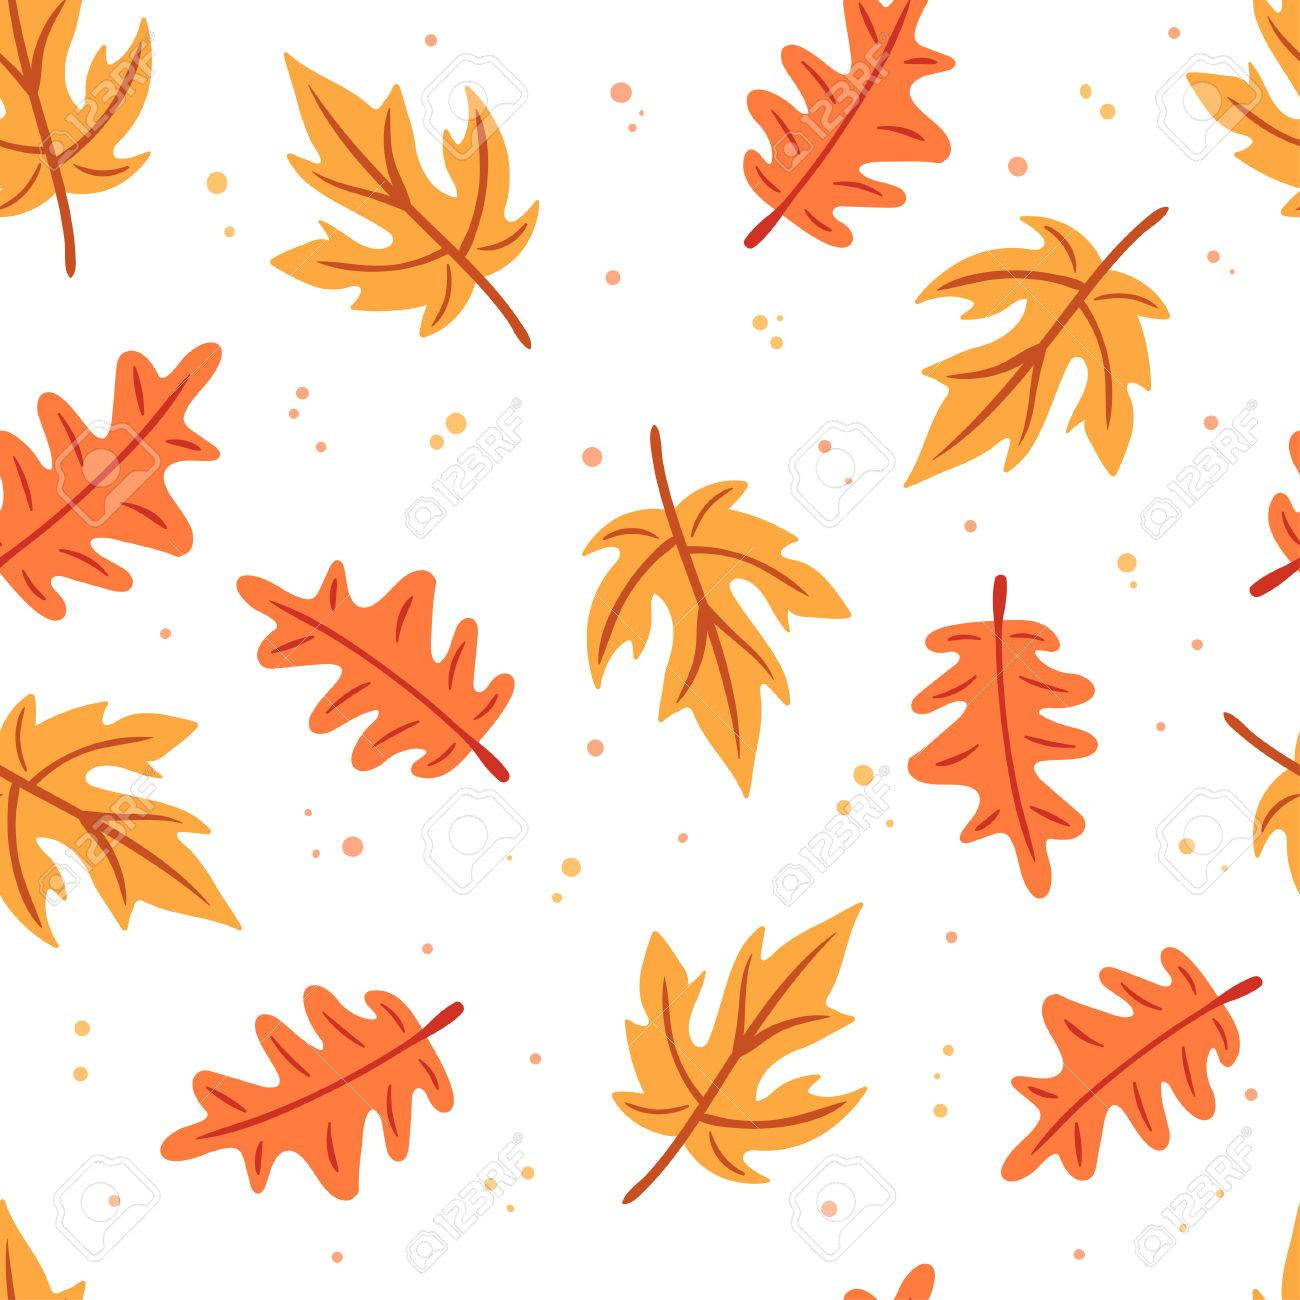 Seamless Autumn Leaves Pattern Vector Illustration On White Royalty Free Cliparts Vectors And Stock Illustration Image 84114309